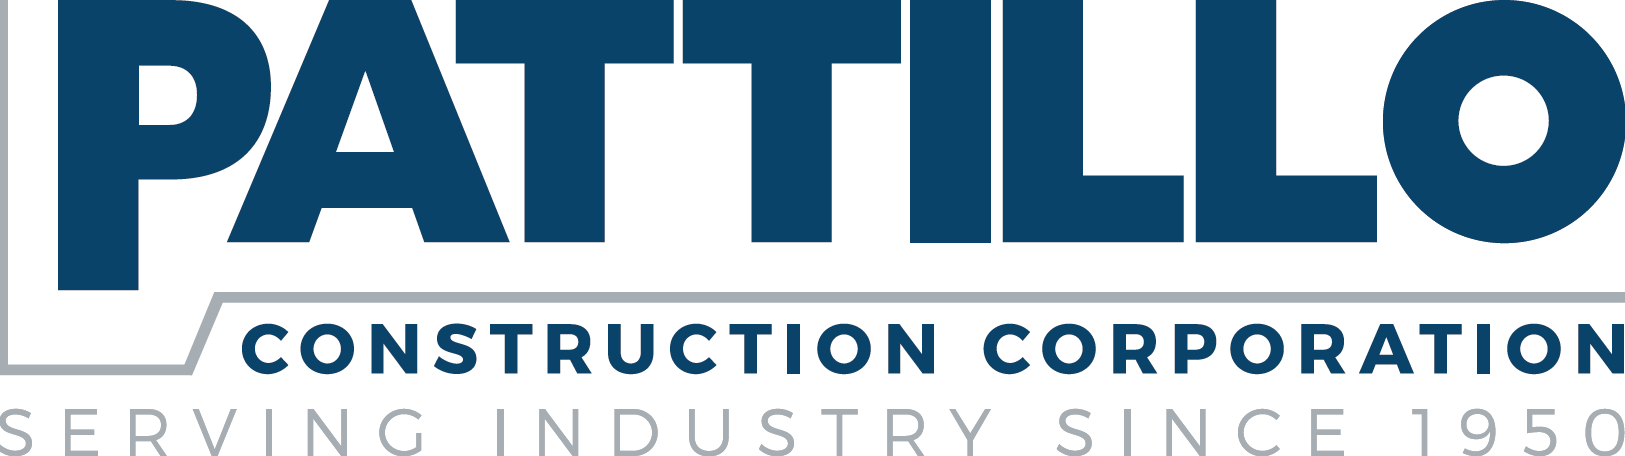 Pattillo Construction Corporation